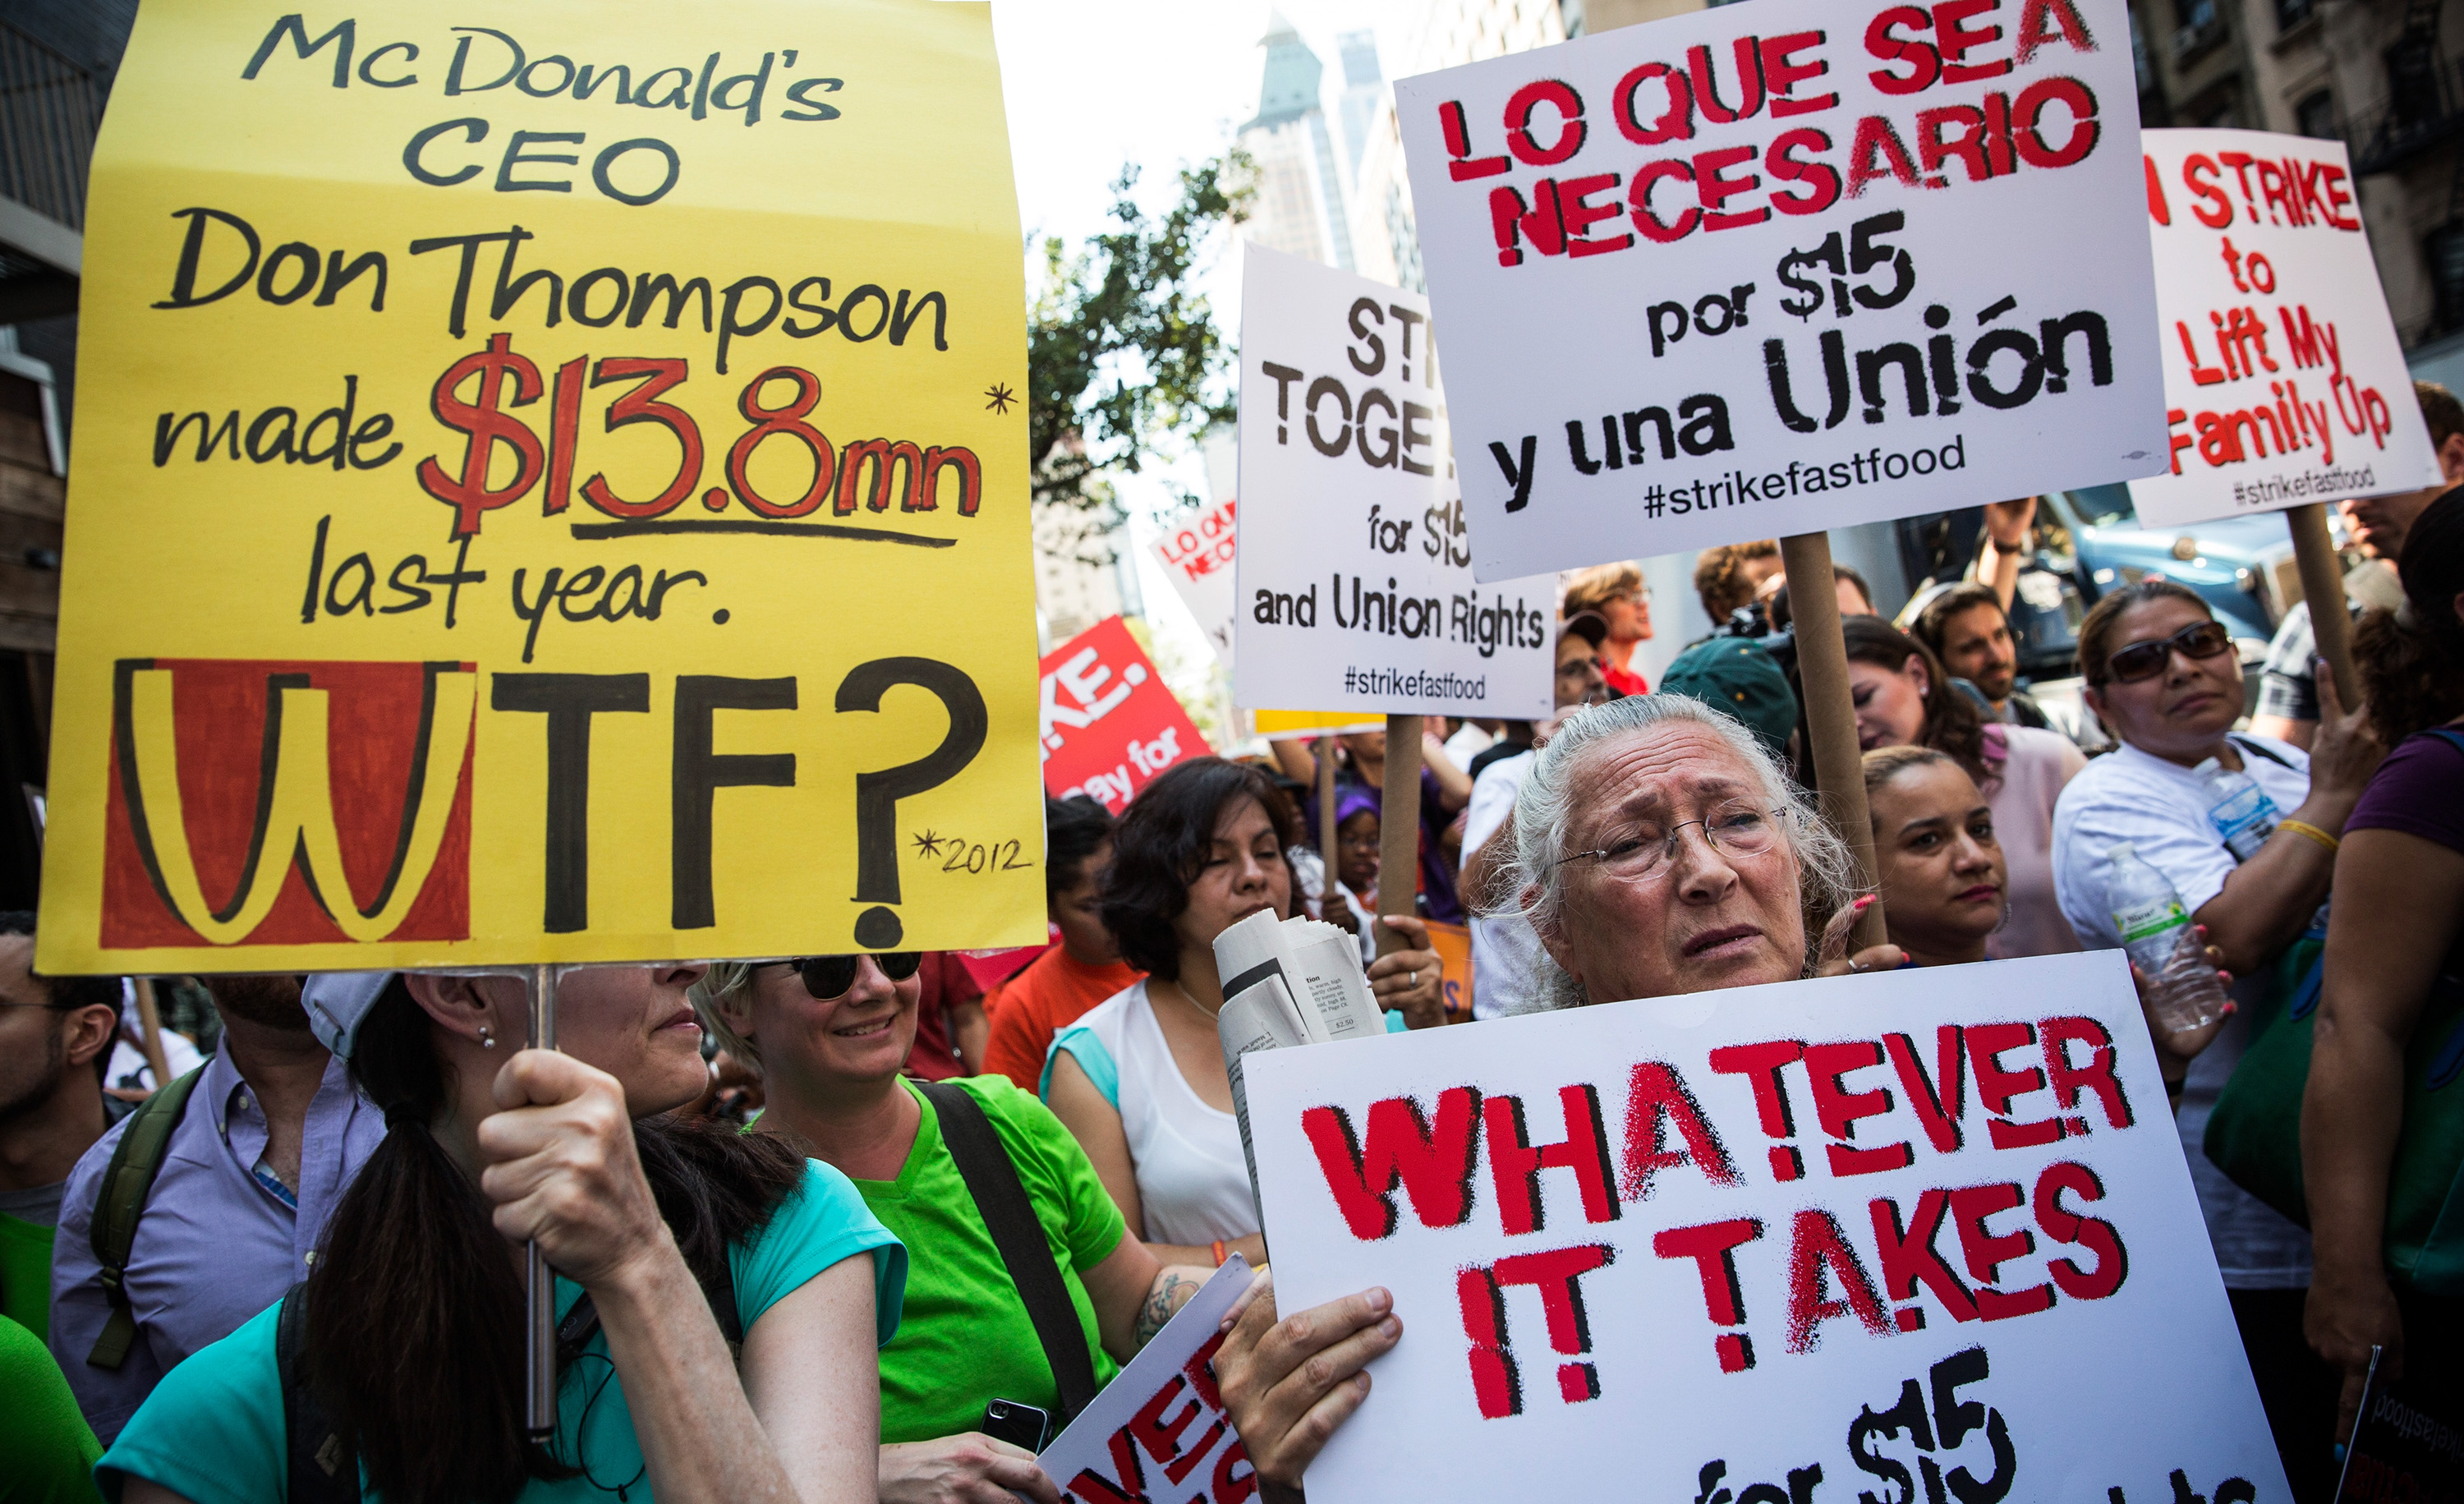 McDonald's Sues City of Seattle to Stop Minimum Wage Increase